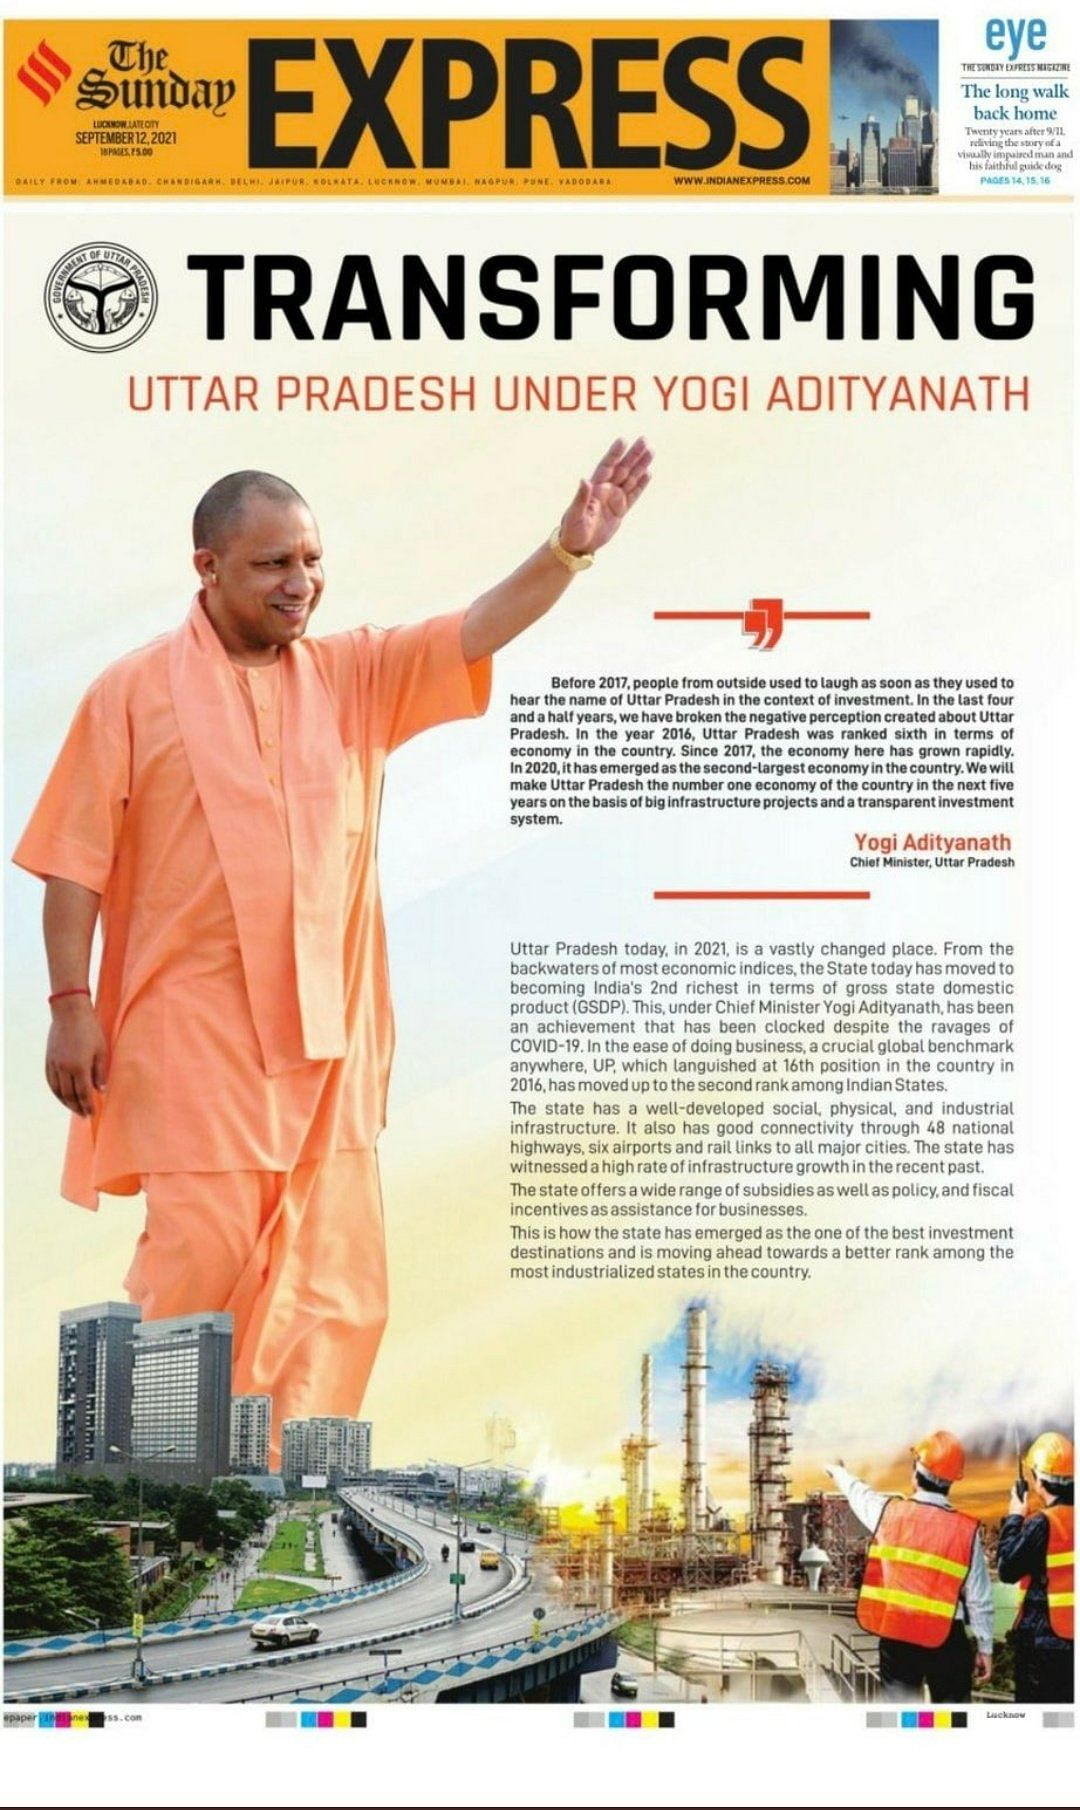 """<div class=""""paragraphs""""><p>The Uttar Pradesh government's advertorial on the front page of <em>The Indian Express</em>.</p></div>"""